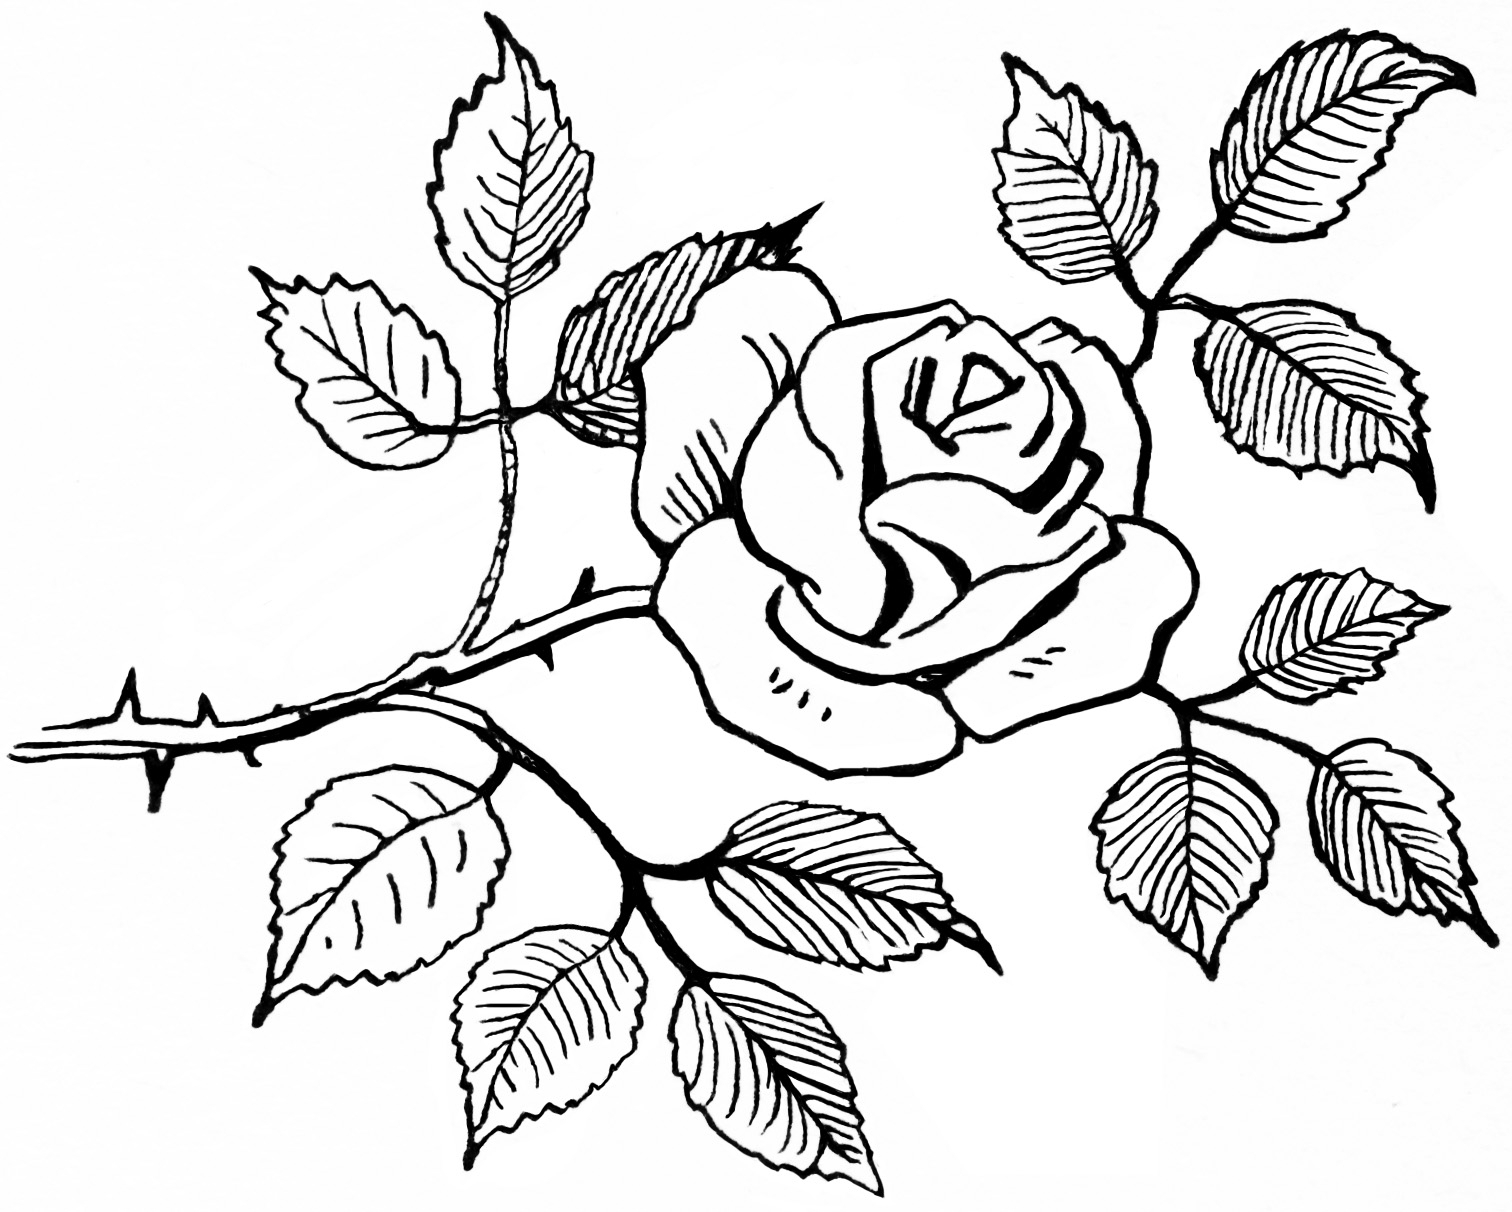 1512x1212 Simple Rose Drawings In Black And White